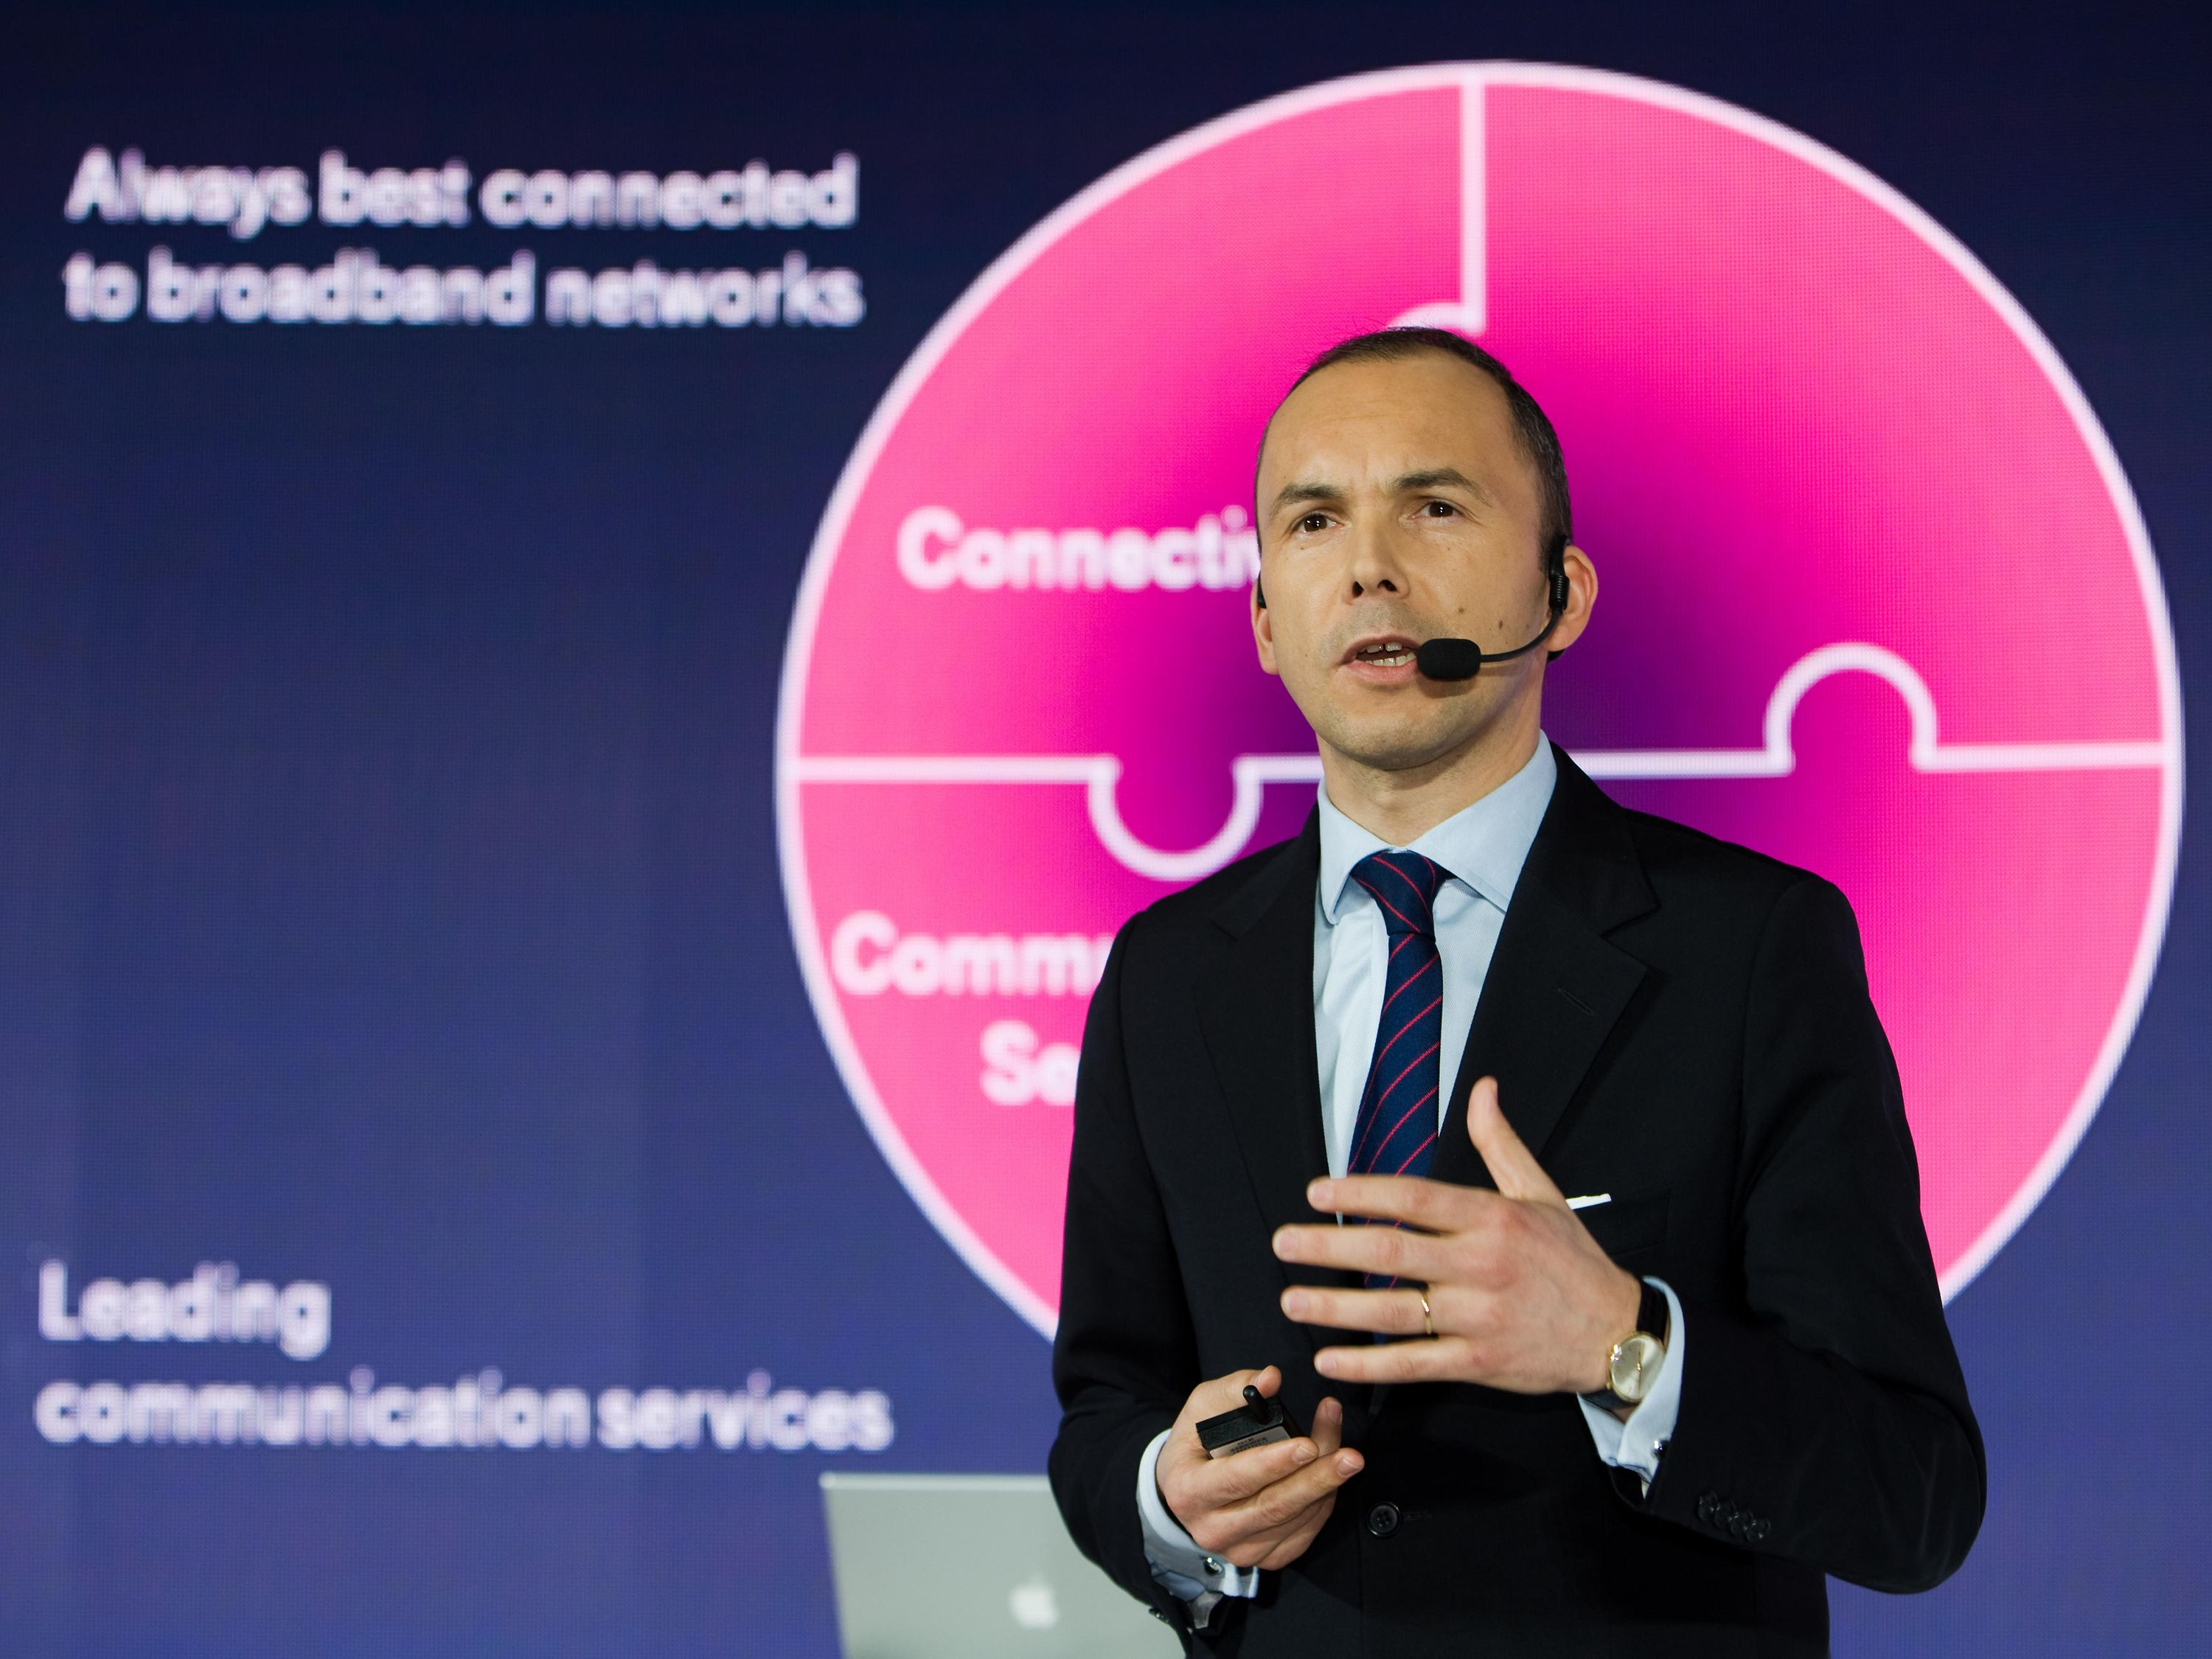 Presentation by Christoph Schläffer on the topic of connectivity.